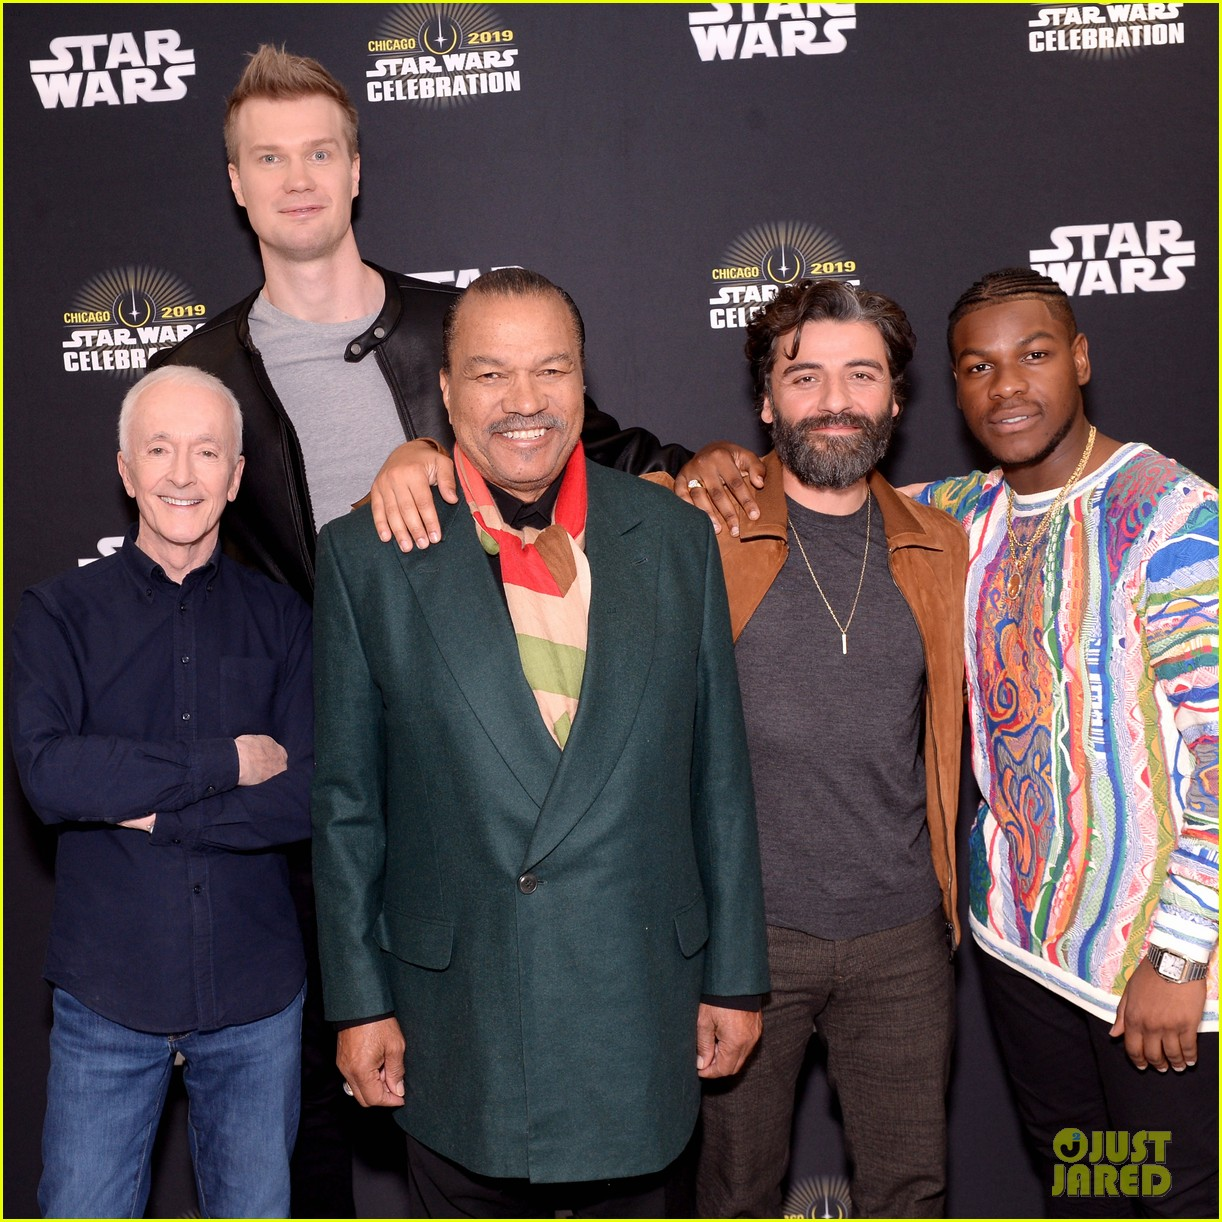 Star Wars Cast Debuts Rise Of Skywalker Trailer In Chicago Photo 4272334 Anthony Daniels Billy Dee Williams Daisy Ridley J J Abrams John Boyega Joonas Suotamo Kathleen Kennedy Kelly Marie Tran Naomi